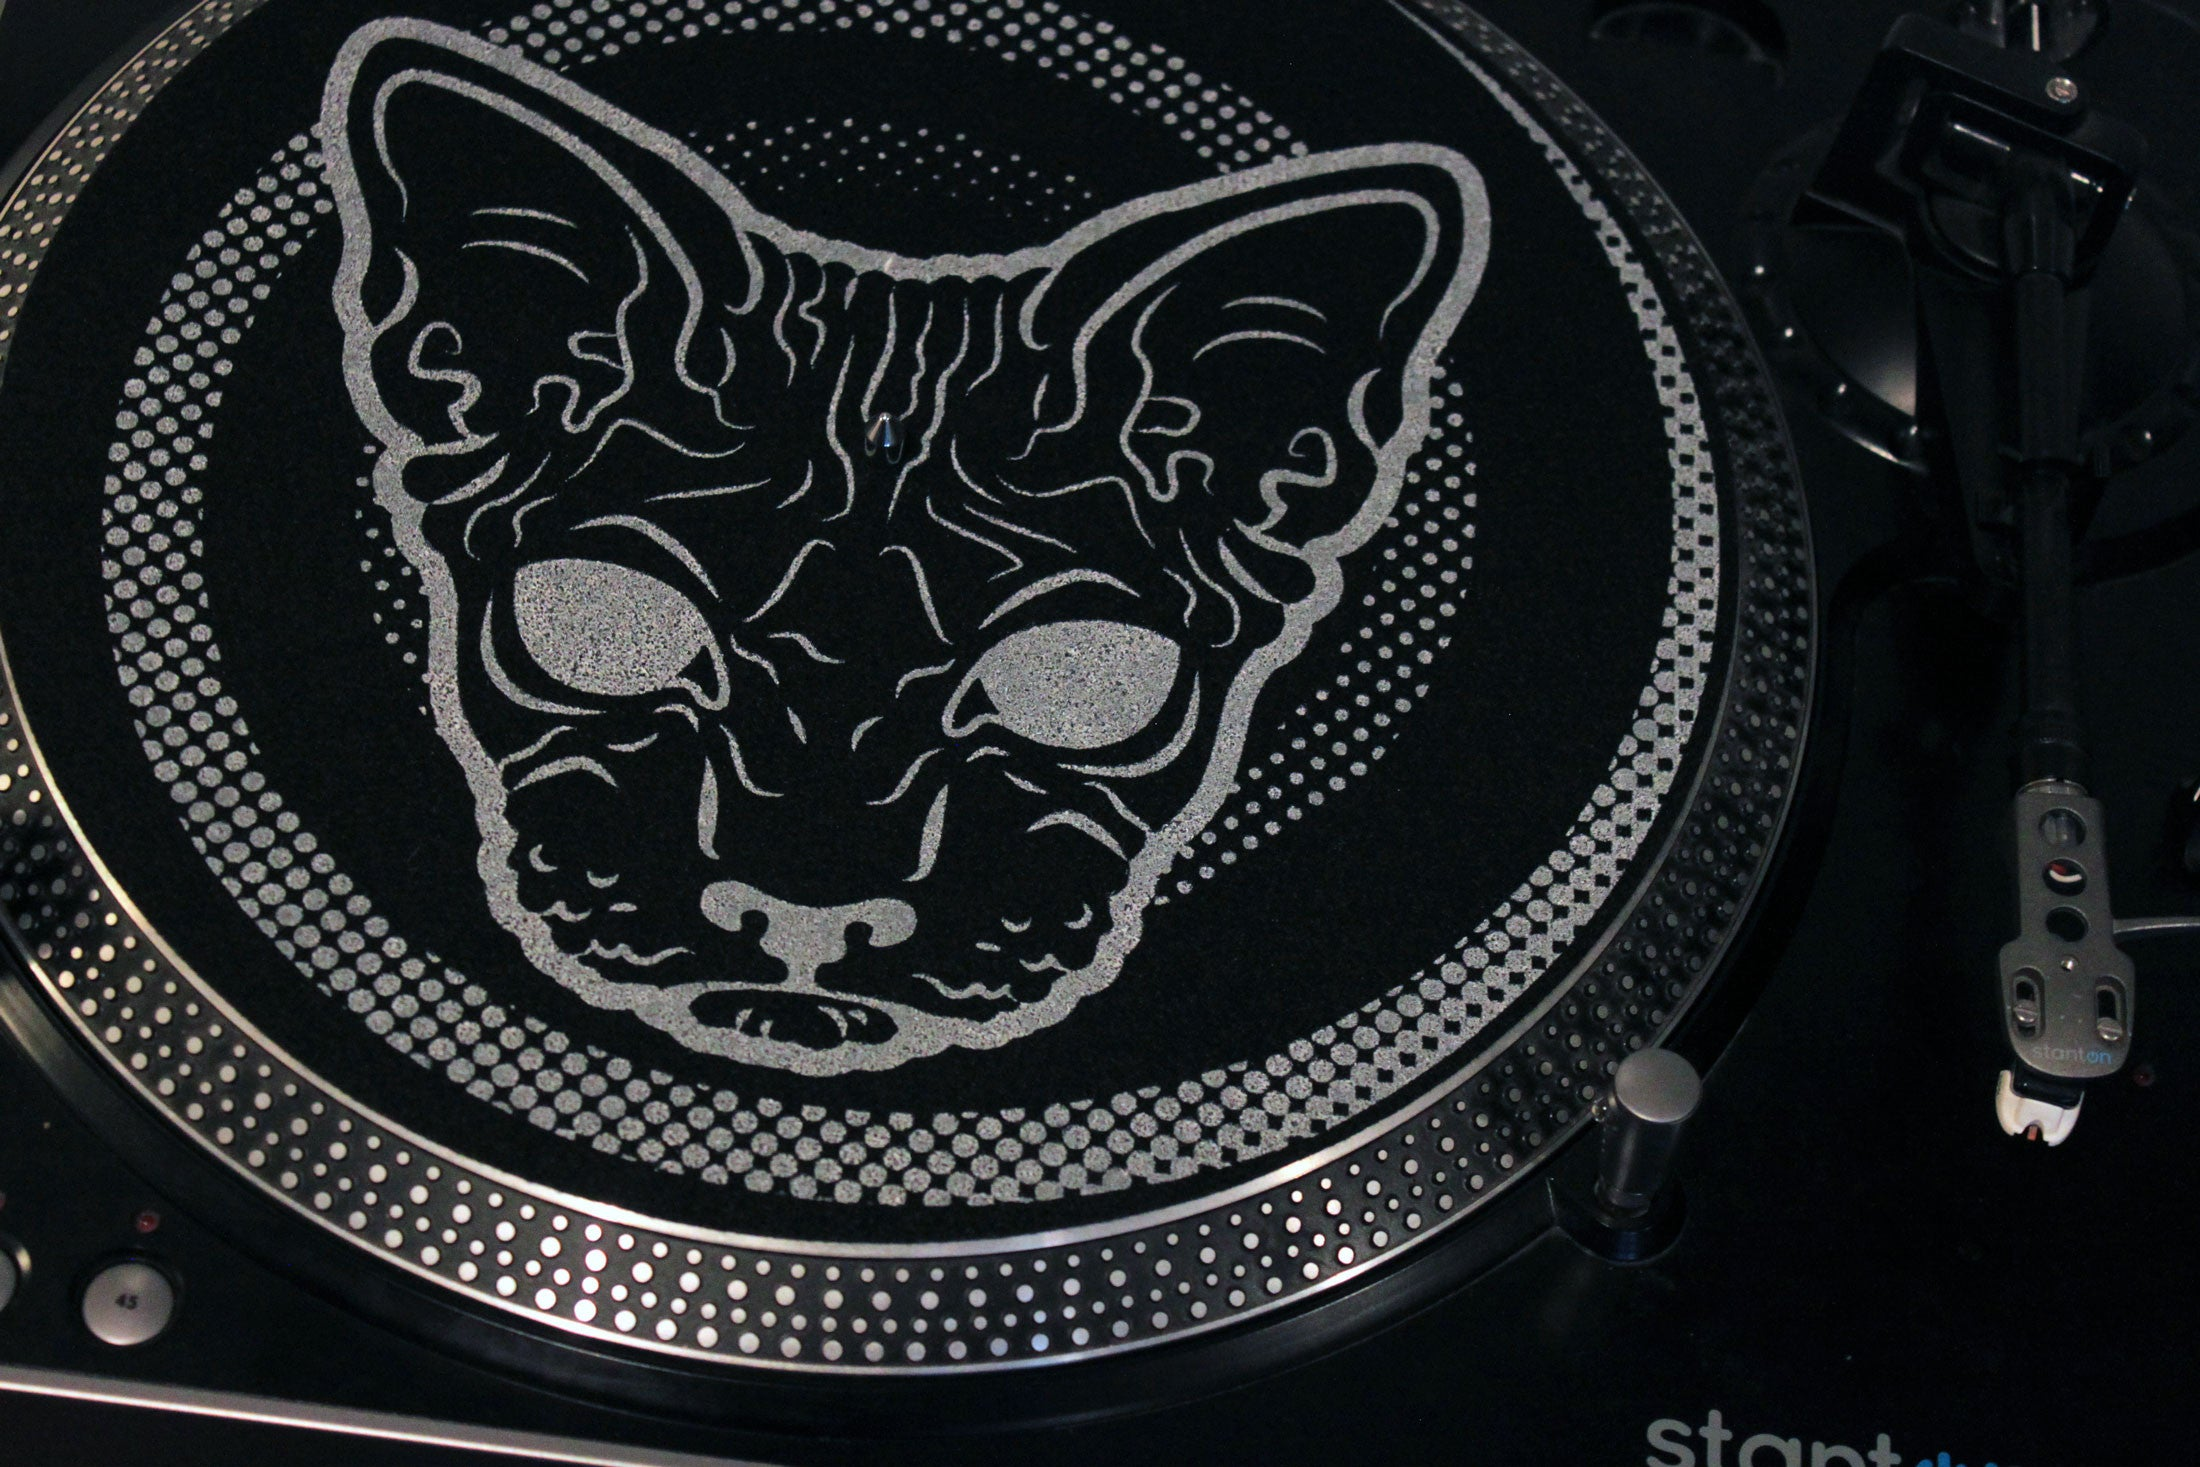 spiral black hairless sphynx cat turntable vinyl slipmat